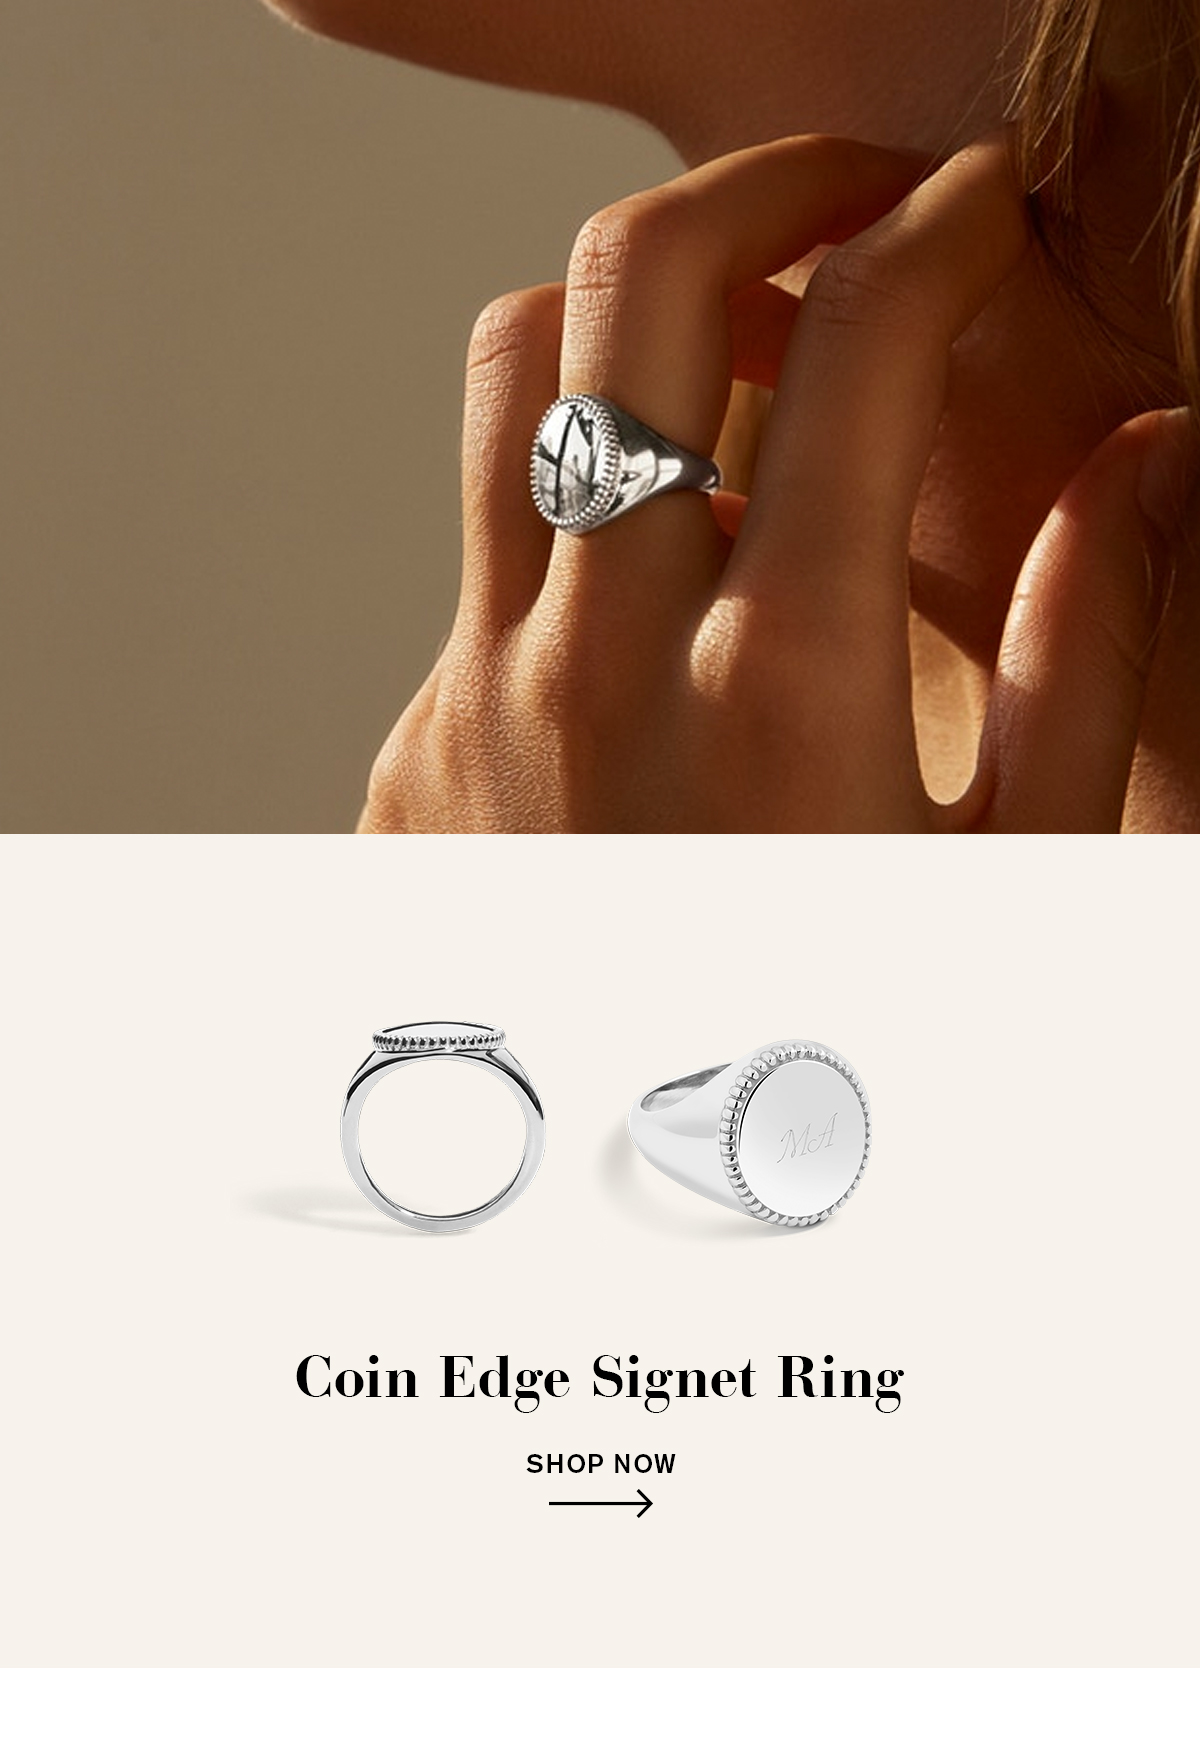 Coin Edge SIgnet Ring